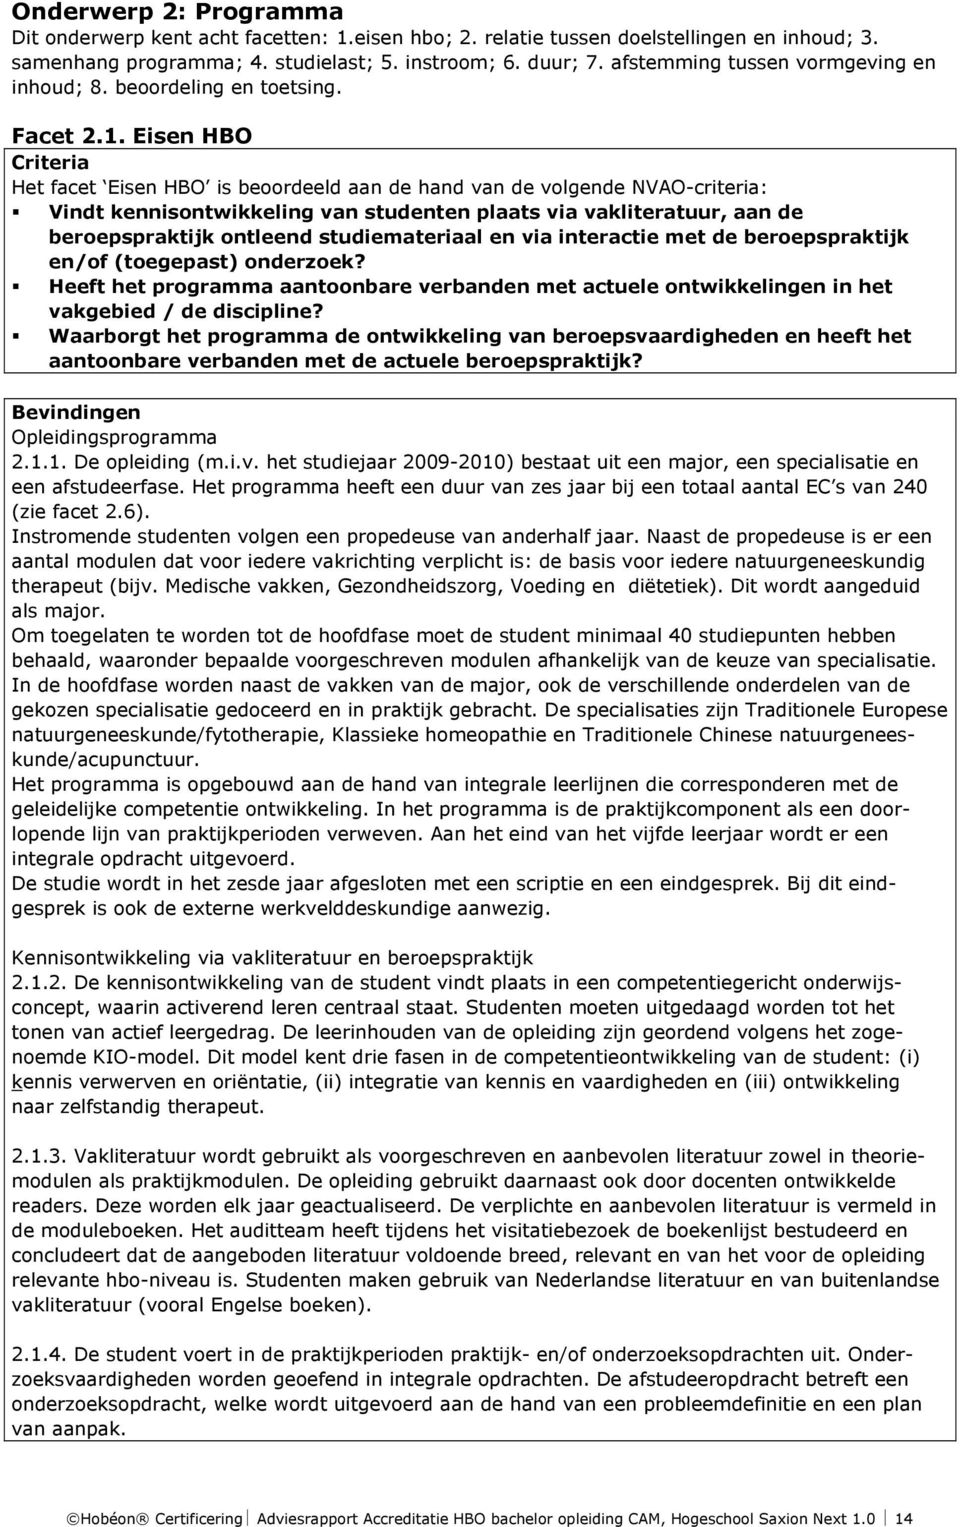 Adviesrapport accreditatie hbo bachelor opleiding cam for Opleiding hovenier hbo